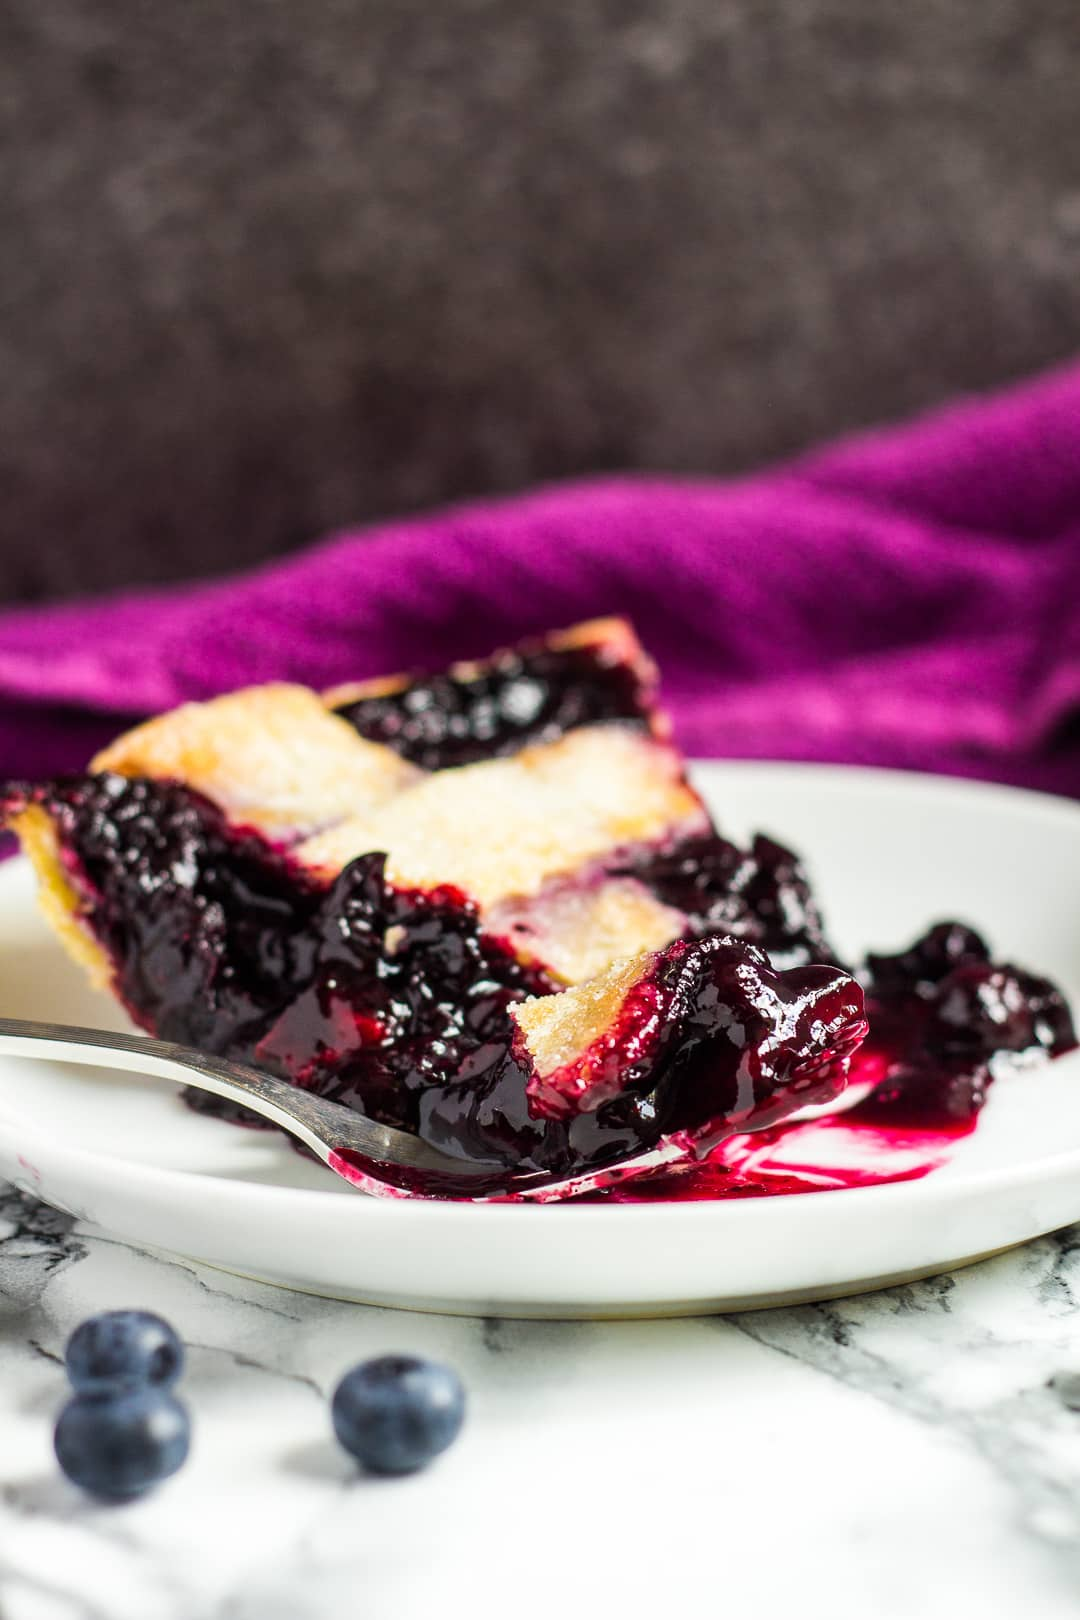 Slice of homemade blueberry pie served on a small white plate with a fork.